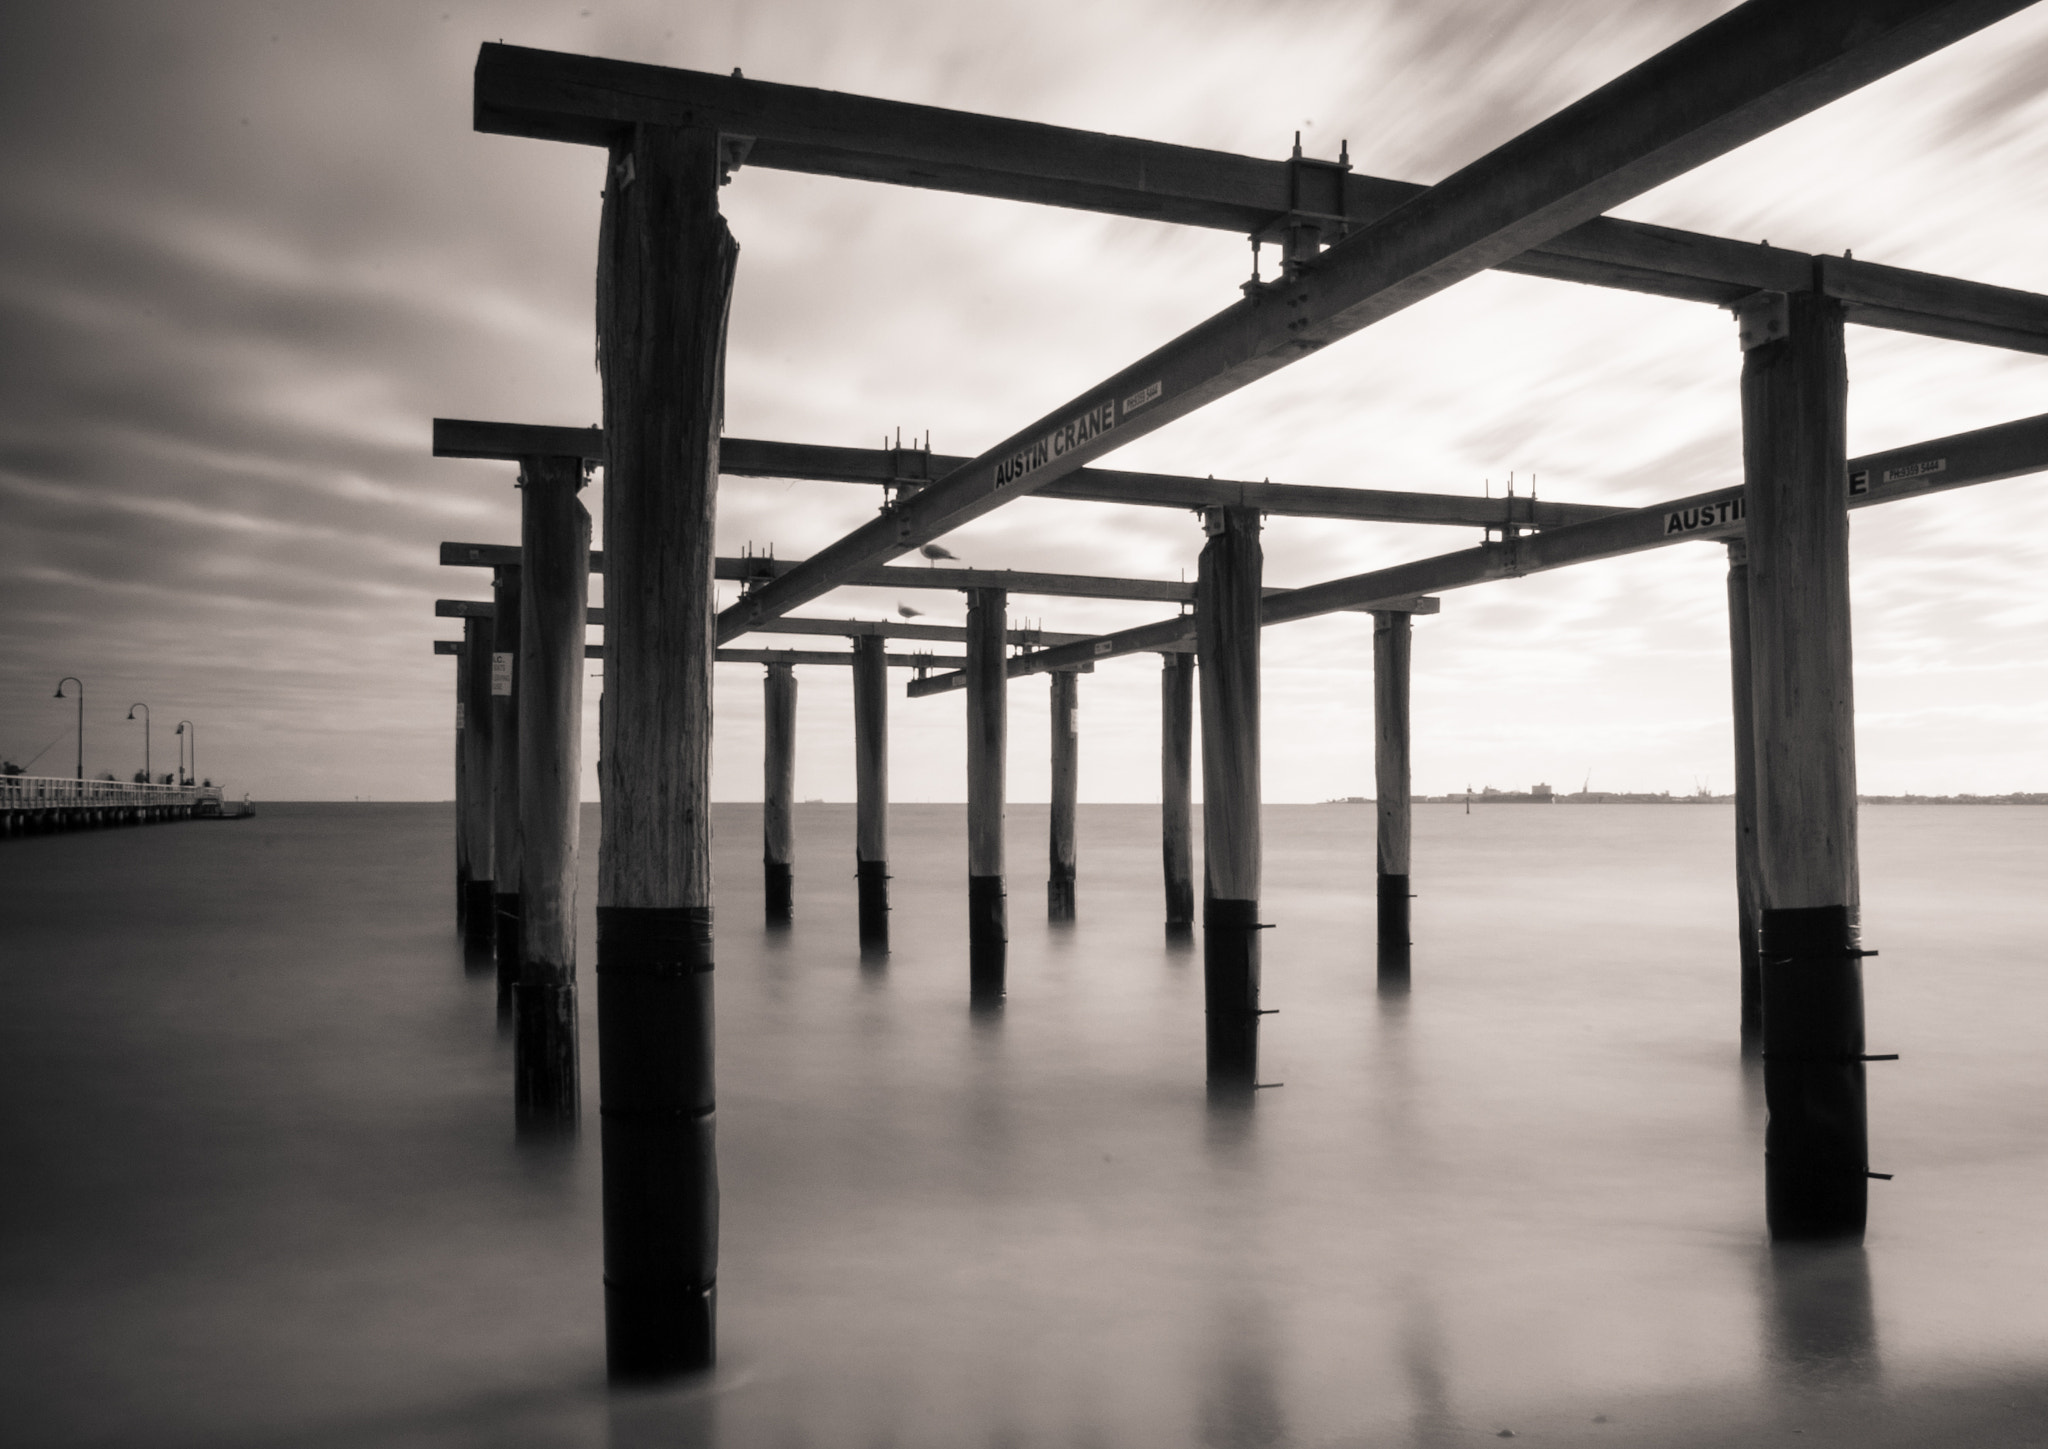 Photograph Feeling the grey by Pat Charles on 500px